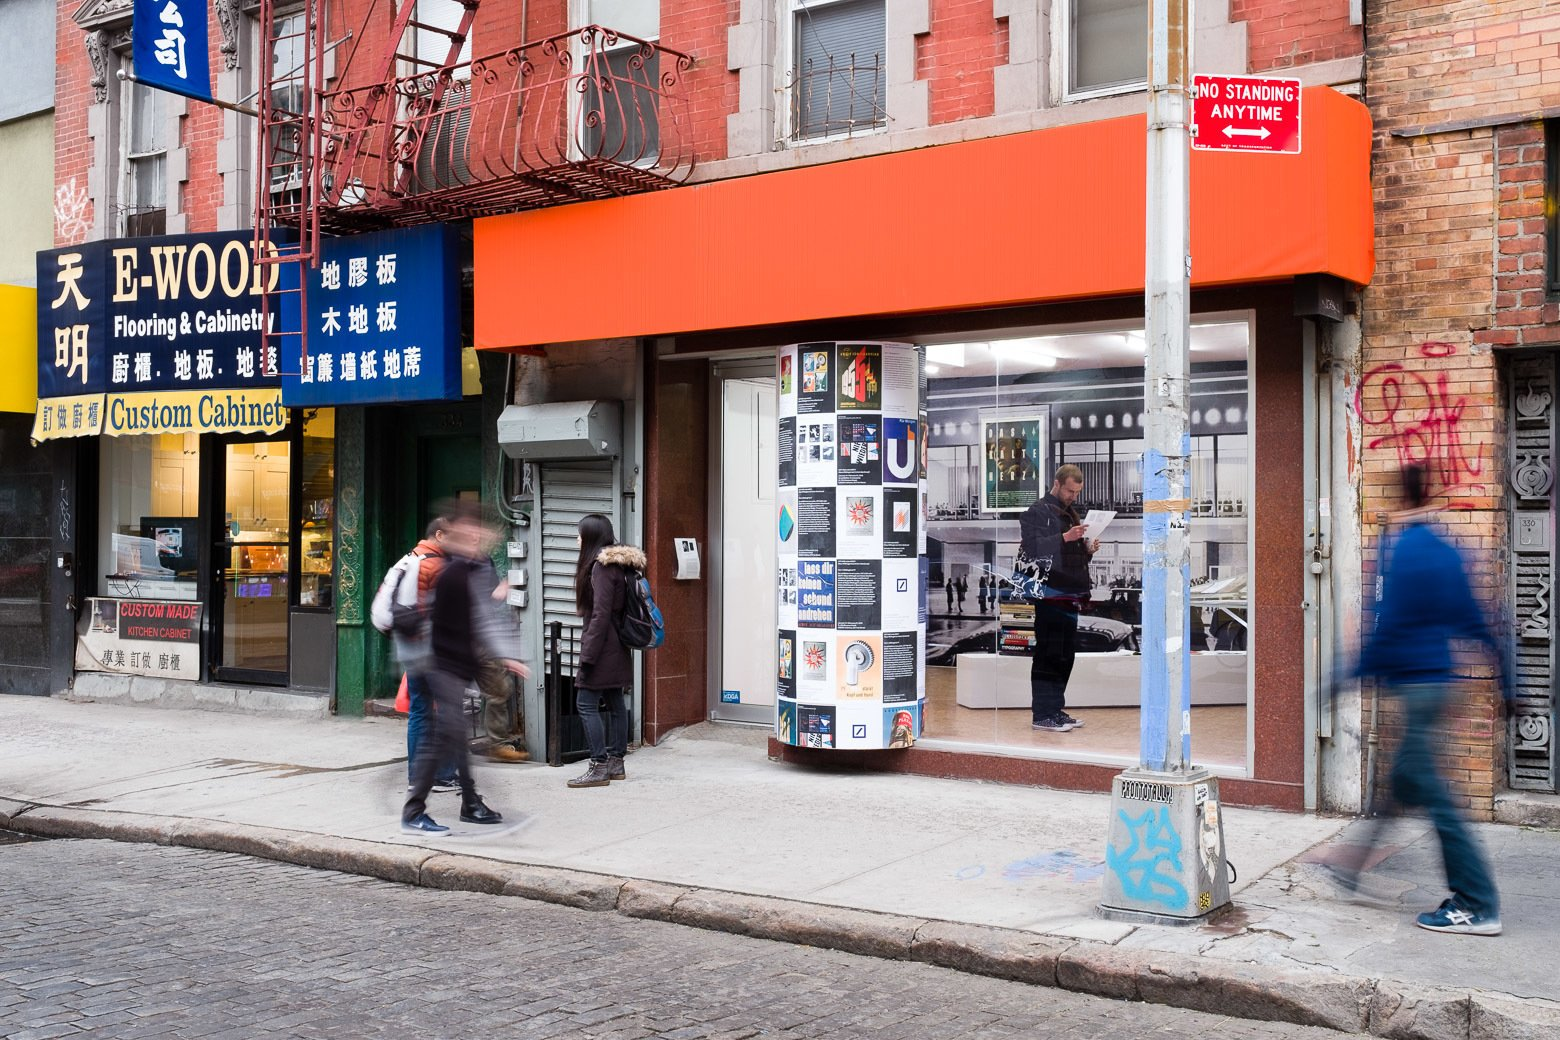 """As part of the exhibition display, Krishnamurthy installed a large poster column that protrudes from the gallery's storefront facade. """"Klaus Wittkugel believed in the street as a primary context for graphic design: a large portion of his work consisted of posters, meant to catch your eye while walking. As P! is in Chinatown and has a very public presence, I decided to extend this gesture and make it a key feature of the exhibition,"""" he says. """"In Berlin, you still see a lot of Littfasssäulen, a distinctive and typical kind of poster column. Together with Cay Sophie Rabinowitz, curator of the parallel exhibition on Anton Stankowski at OSMOS, I conceived an installation that would display reproductions of work by the two Cold War designers together. There is also a second poster column at OSMOS, which is the 'umbilical cord' between these two otherwise independent exhibitions. The installation echoes Wittkugel's own approach to his retrospective exhibition in 1961, when he covered the poster columns in the city with a selection of his past work, along with the posters announcing the show. Artist Maayan Strauss had the brilliant idea of making the poster column 'break out; of the gallery, so that it seems to literally cross over a border. Wittkugel's first job was as a window-dresser, so it's an appropriate homage to have this kind of attention paid to the storefront window."""""""